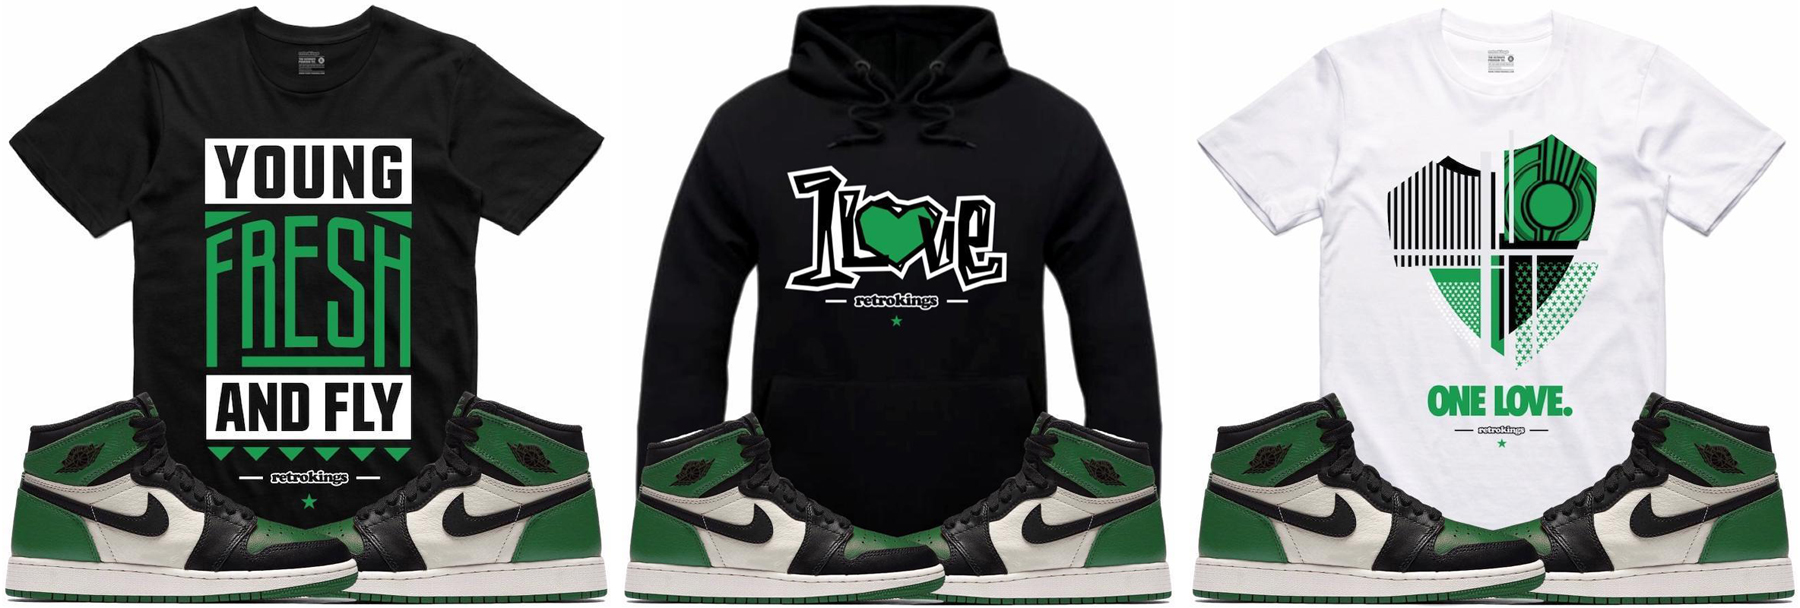 jordan-1-pine-green-sneaker-shirts-retro-kings